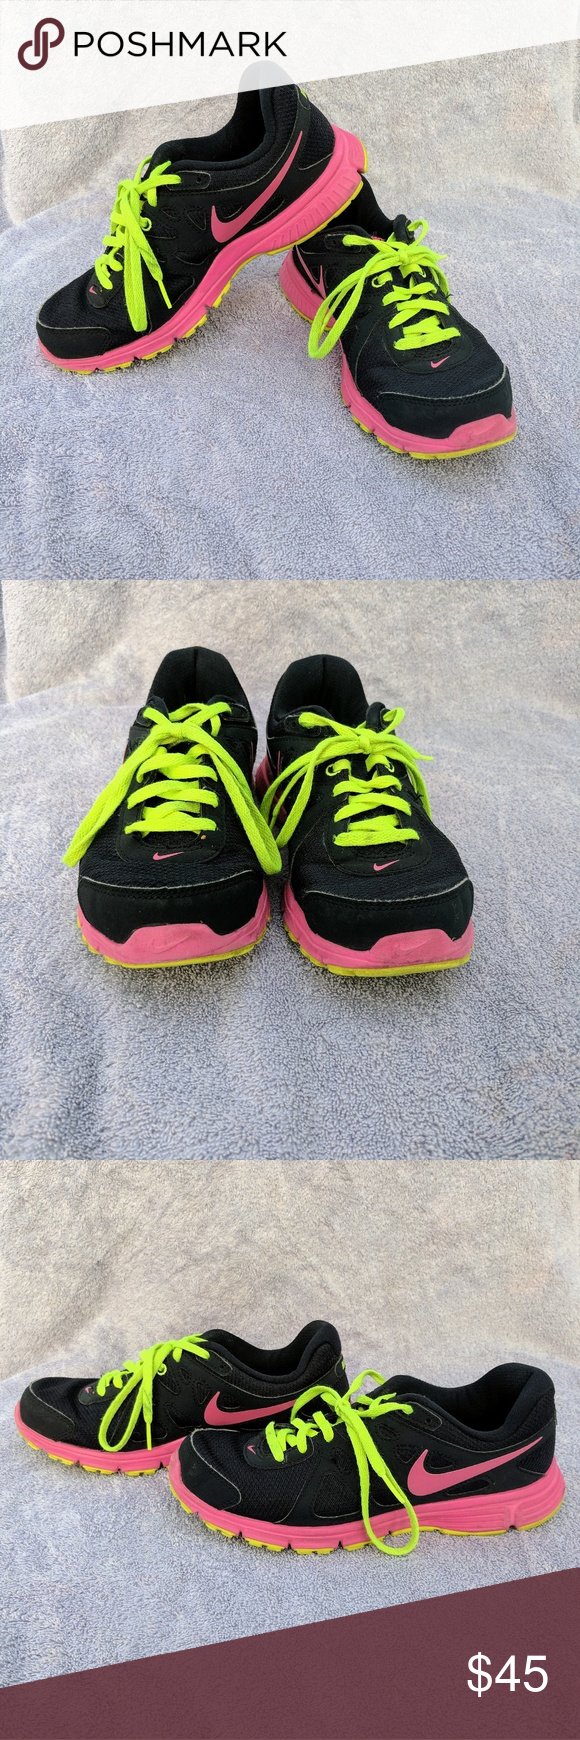 Nike revolution 2 sneakers practically new